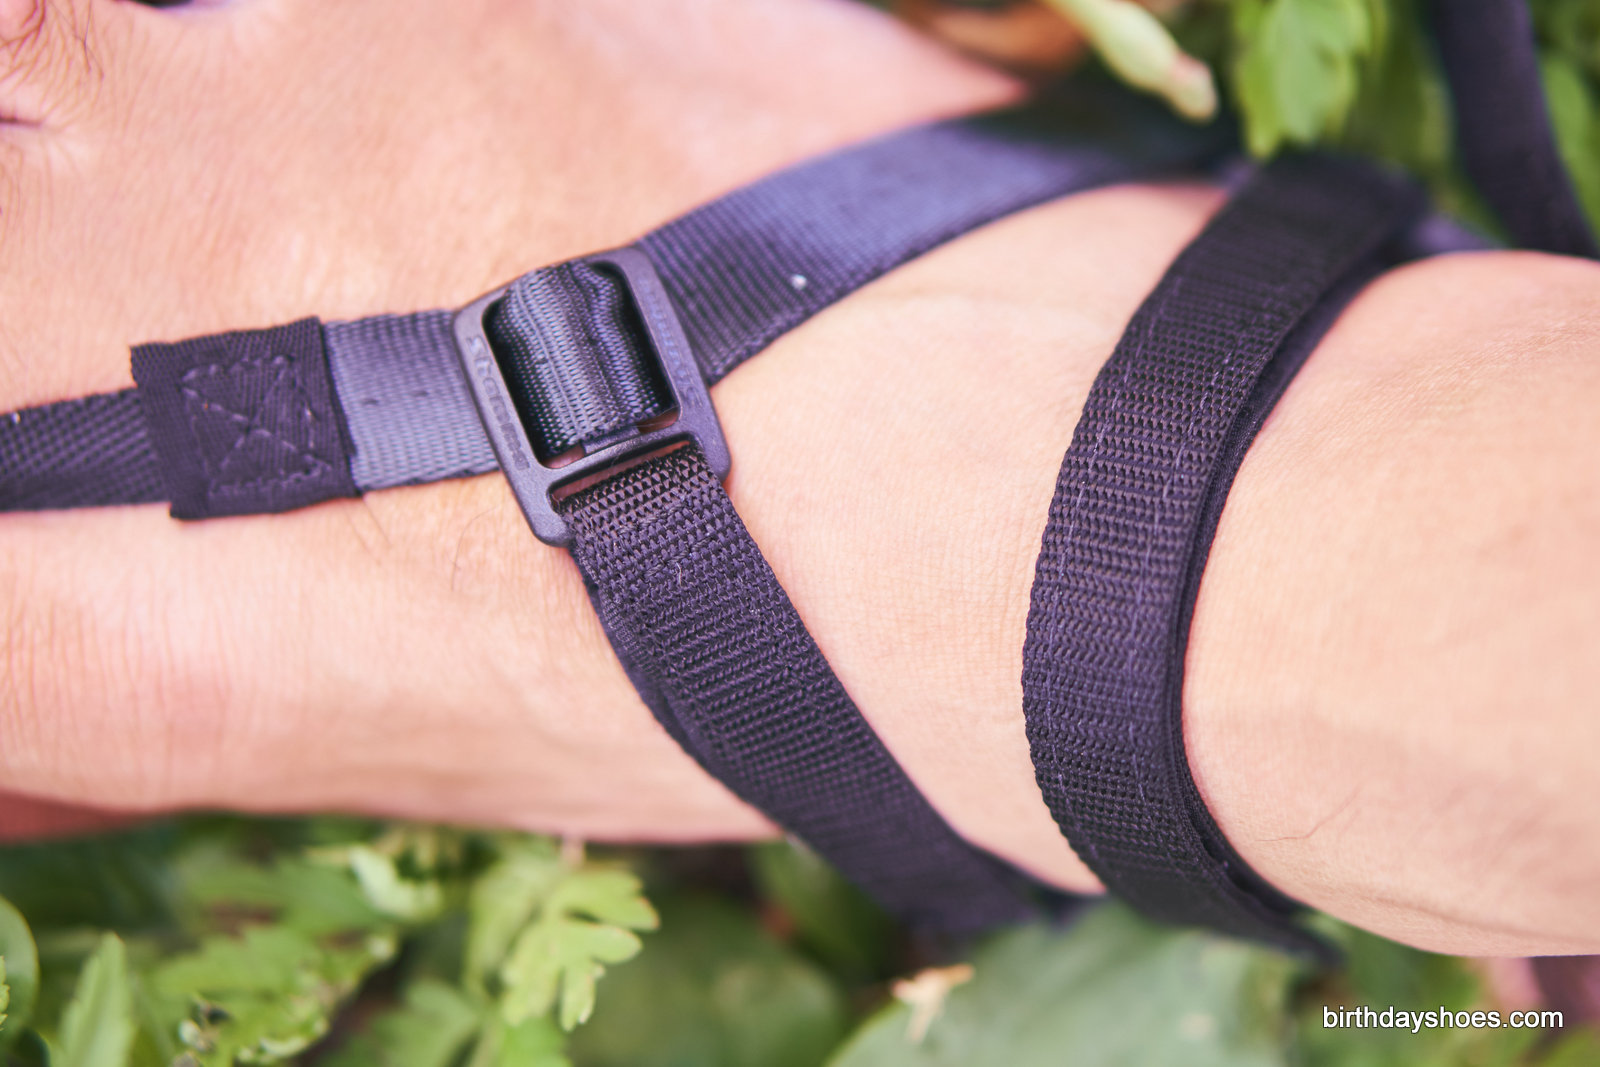 The super secure Warriors get even better with the addition of power straps